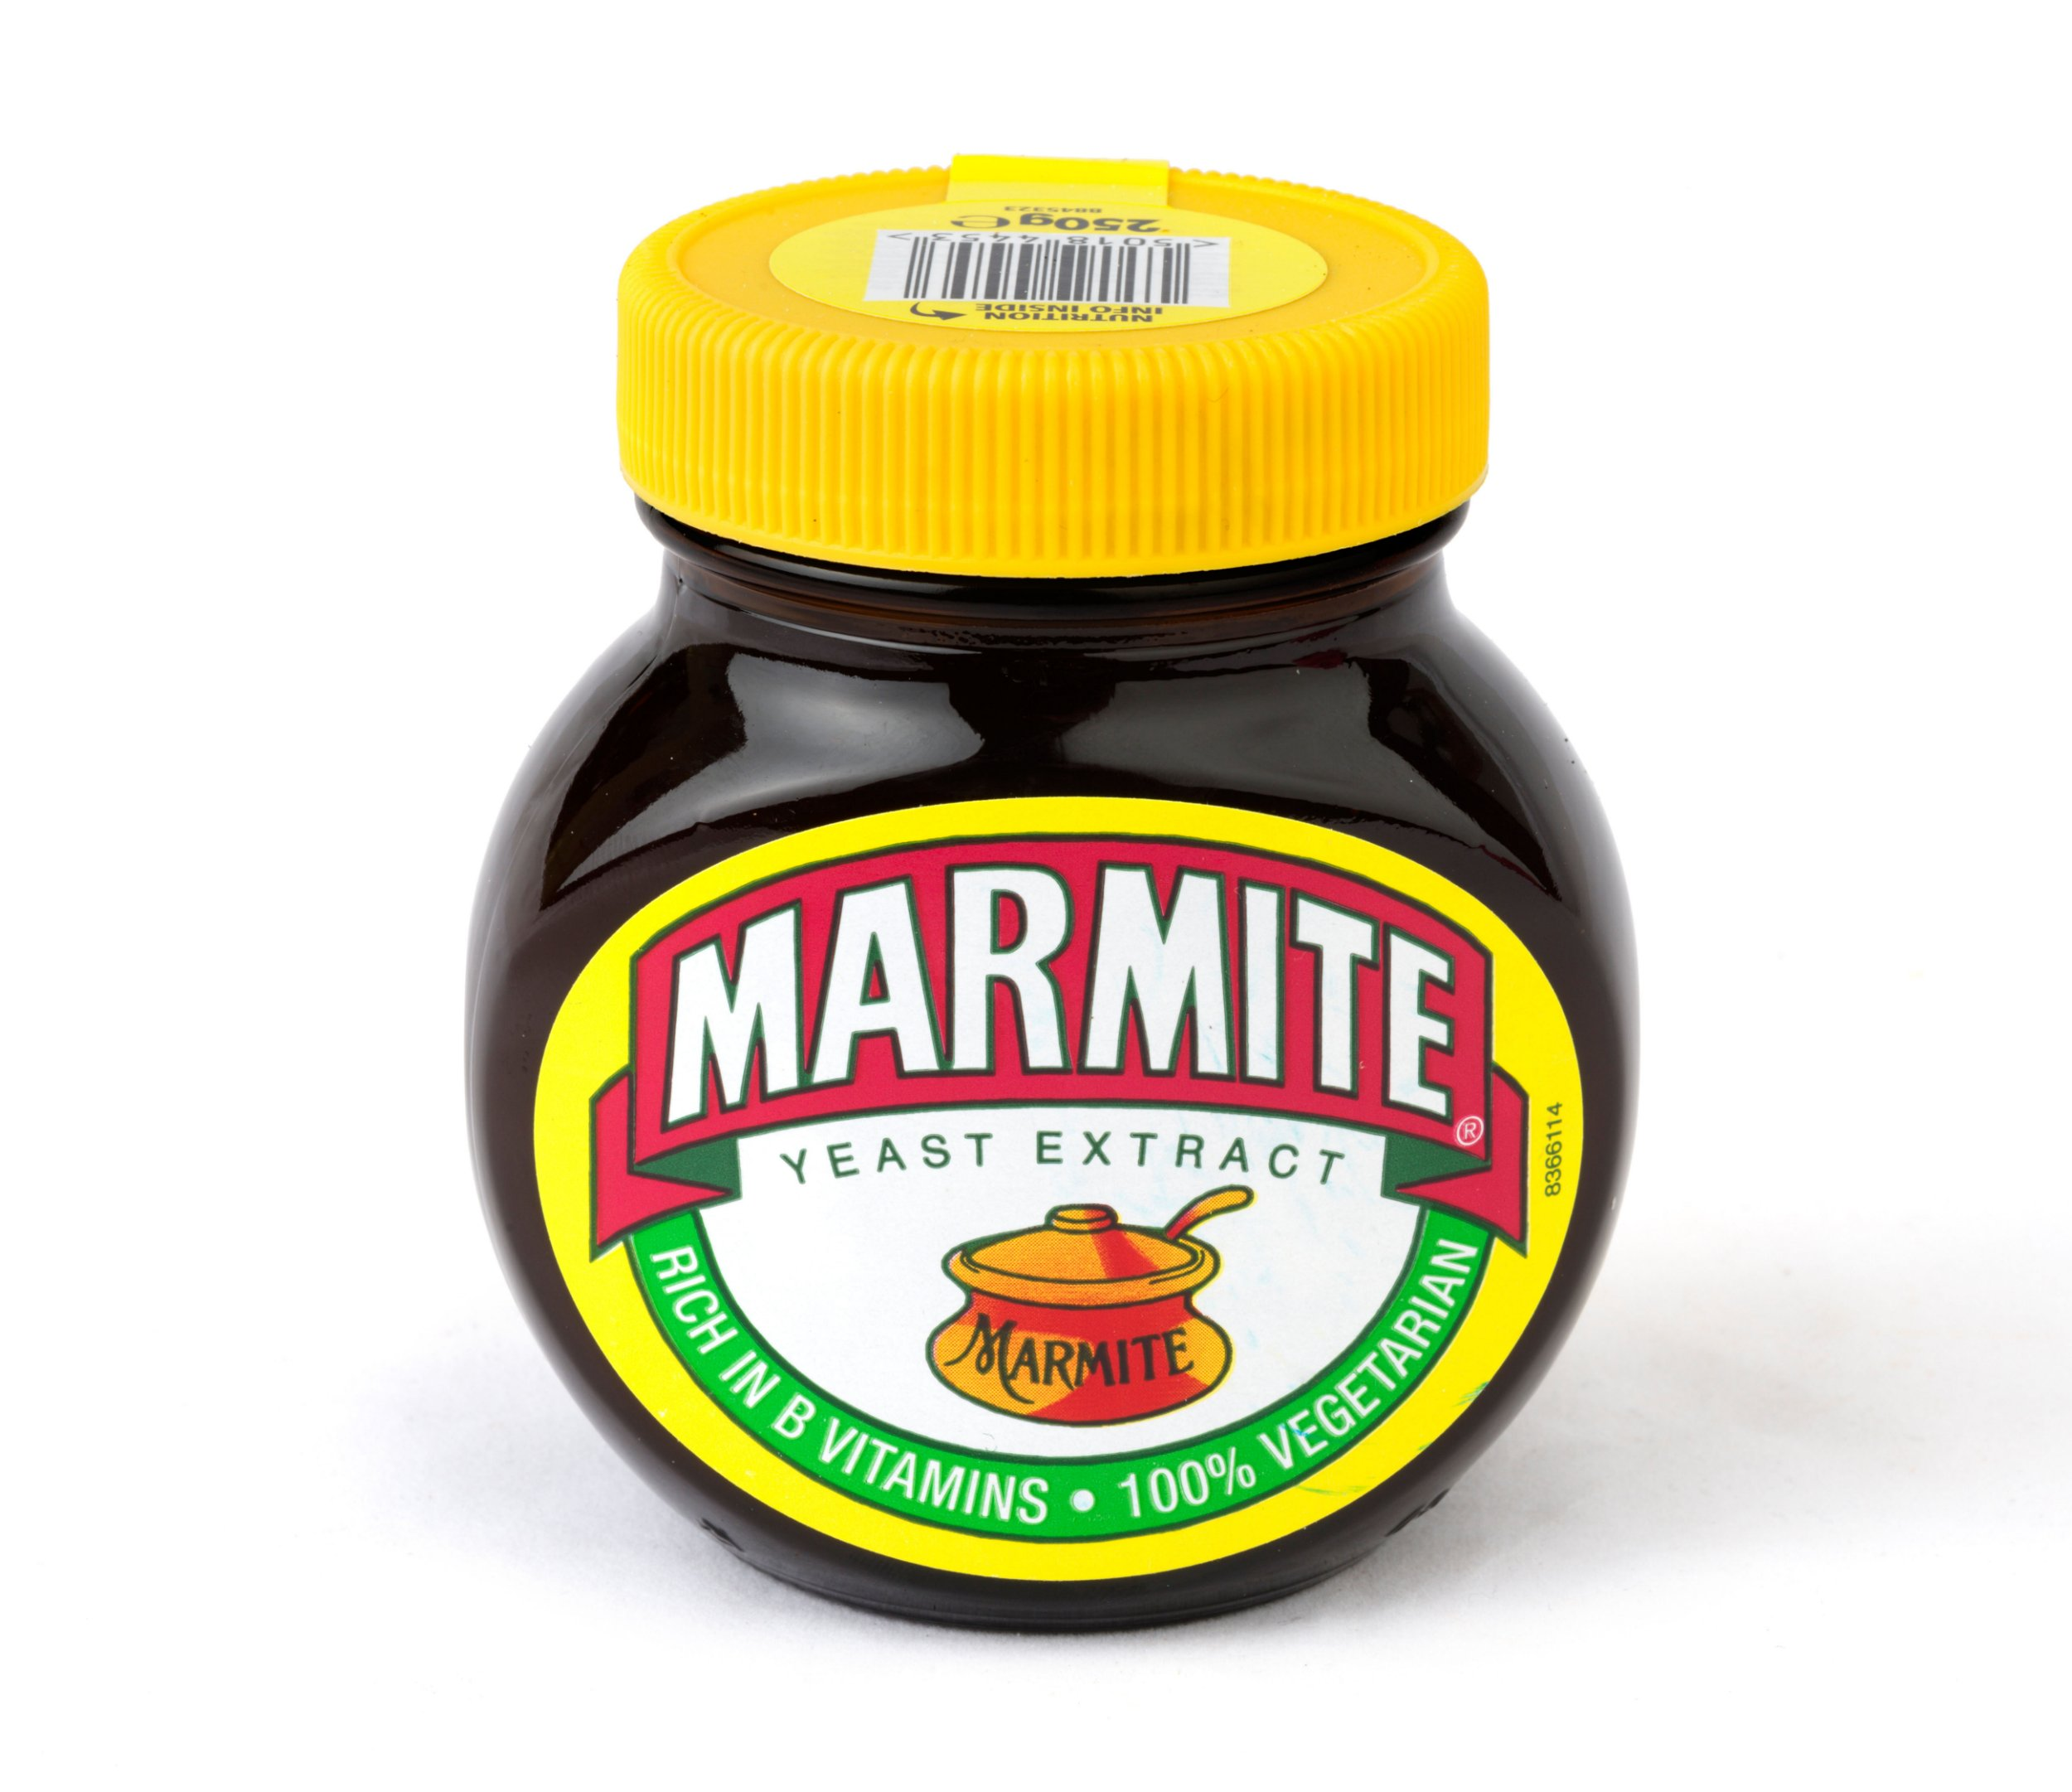 15 things every Marmite lover knows